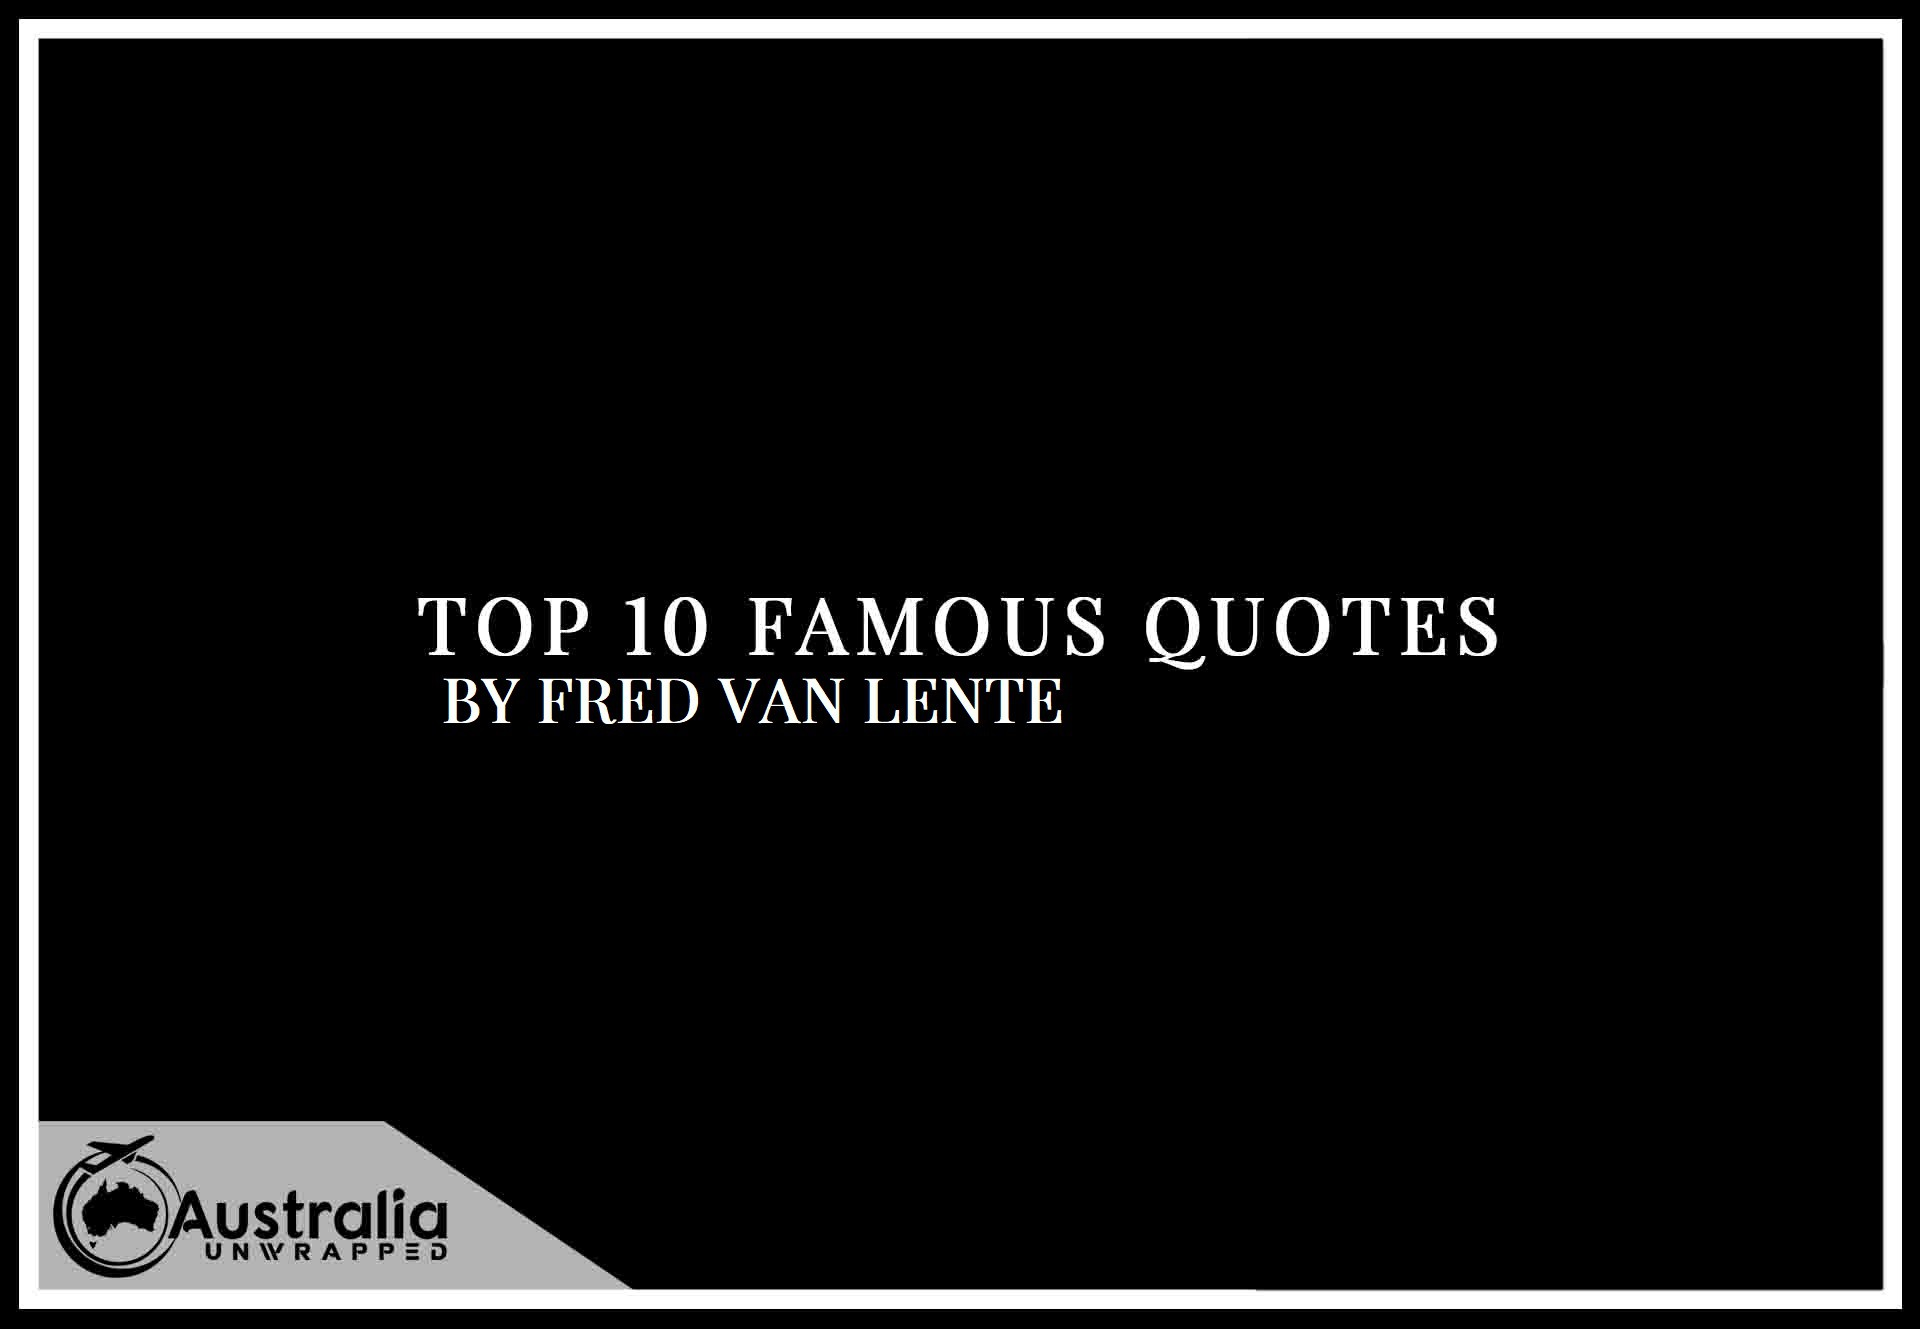 Top 10 Famous Quotes by Author Fred Van Lente